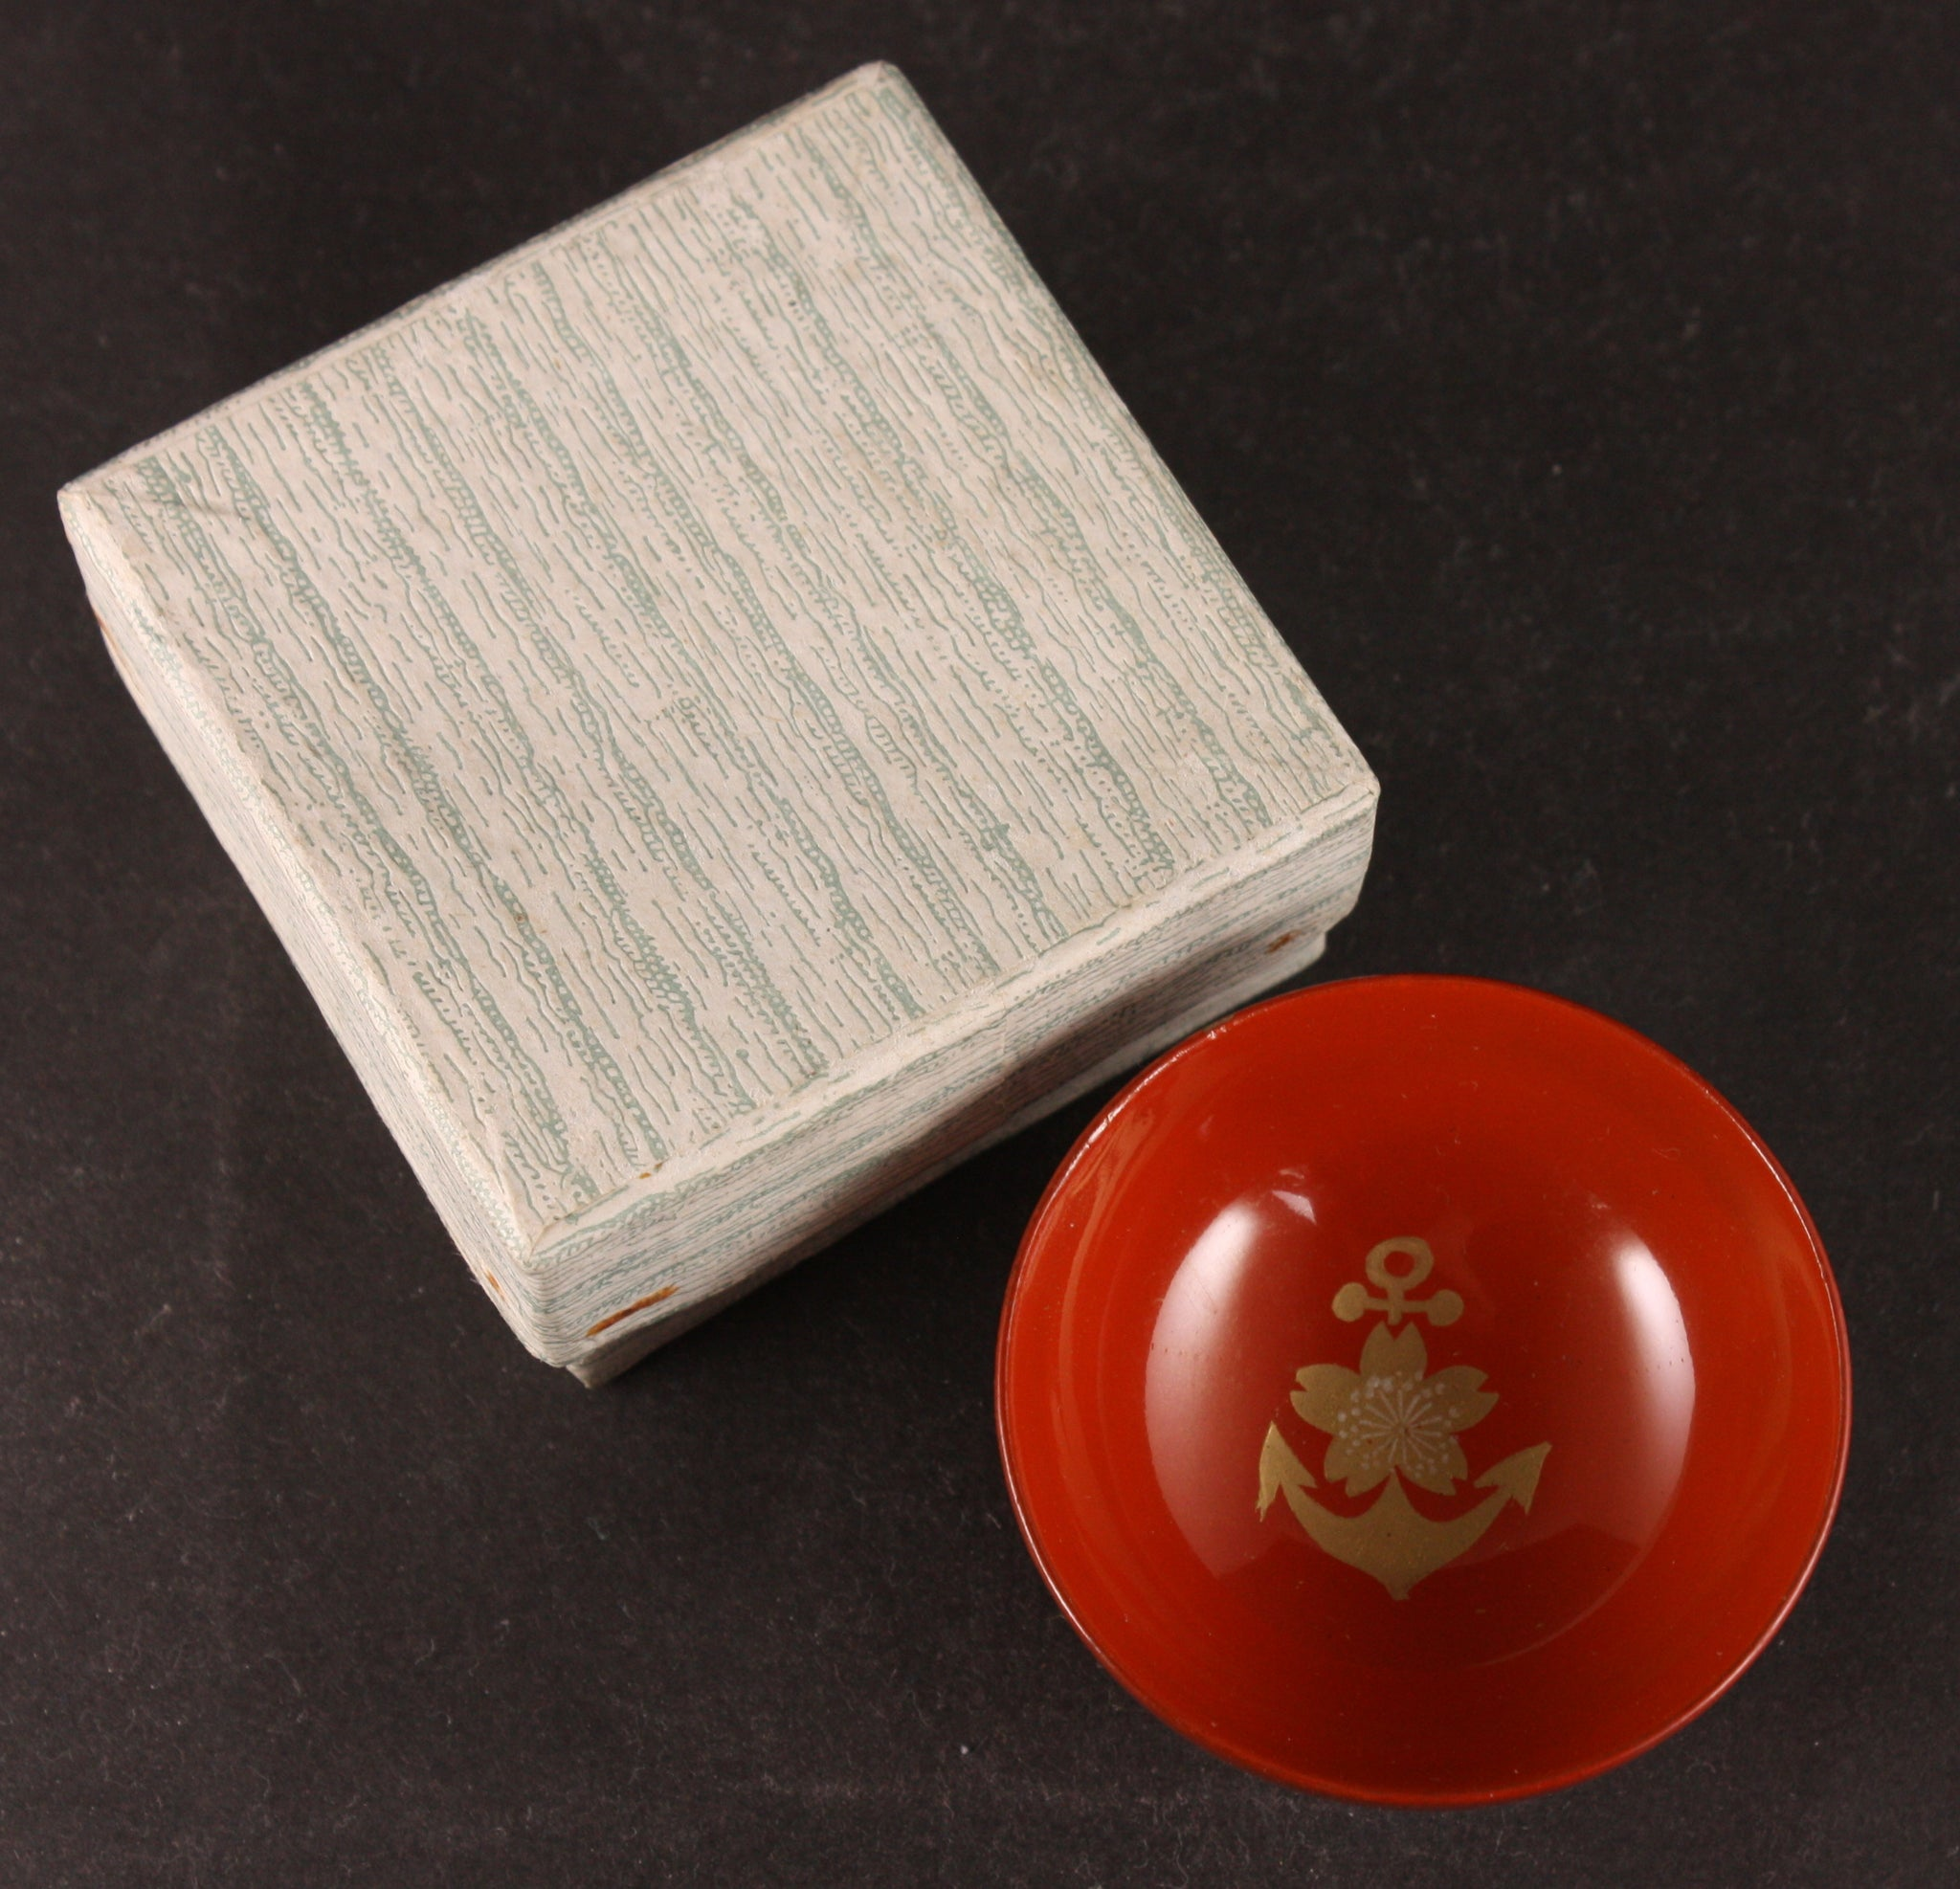 Antique Japanese Military Anchor Blossom Lacquer Boxed Navy Sake Cup